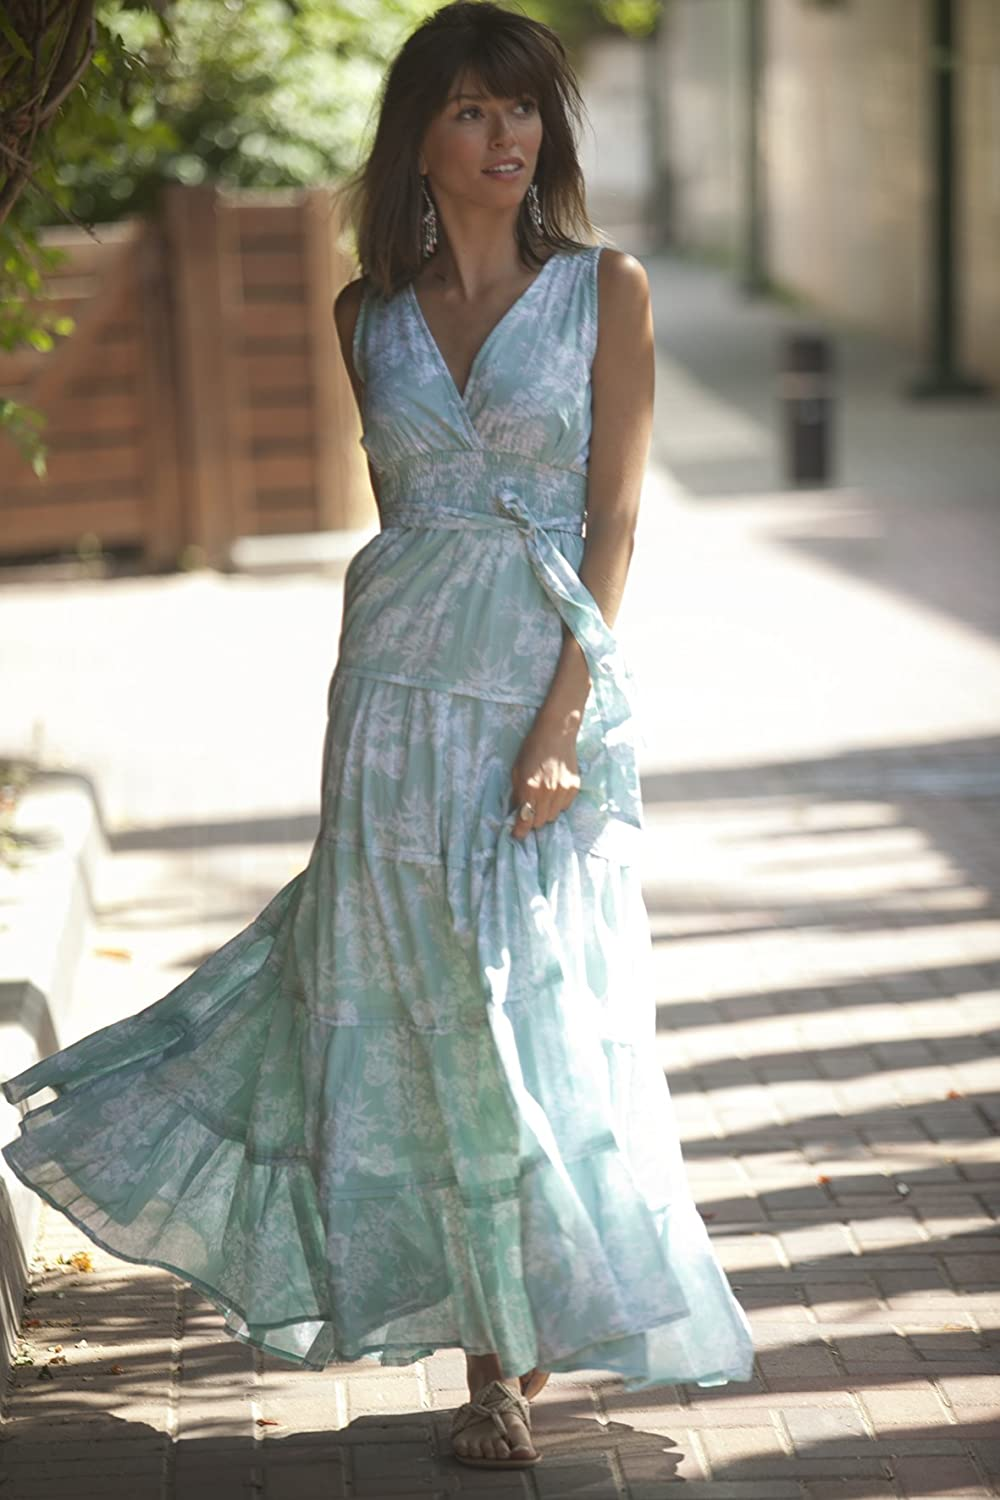 Light Turquoise Maxi Dress ,Unique Long Dress, Holiday Flower Cotton Maxi Dress, Hippie Urban Day Summer Dress, Romantic Women Dress